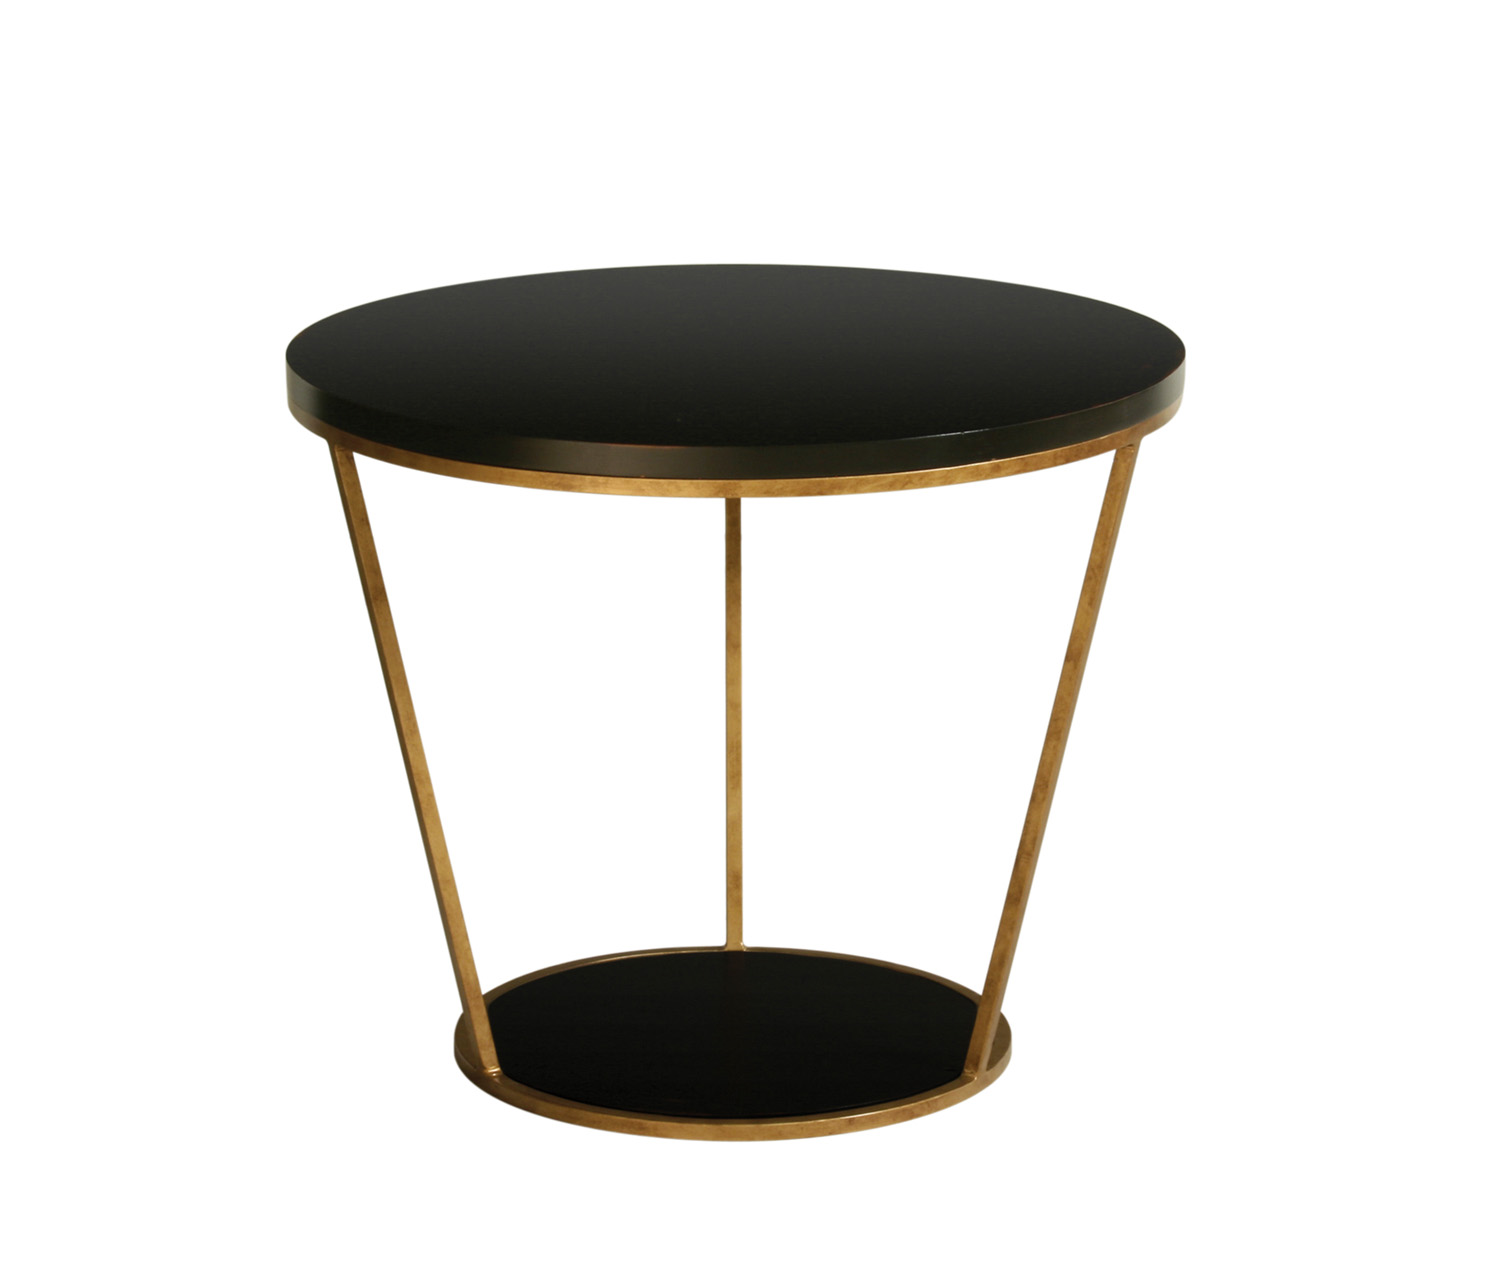 round side tables for bedroom blair table accent contemporary glass corner small storage chest oak coffee unfinished dining legs copper gray yellow home decor half circle sofa